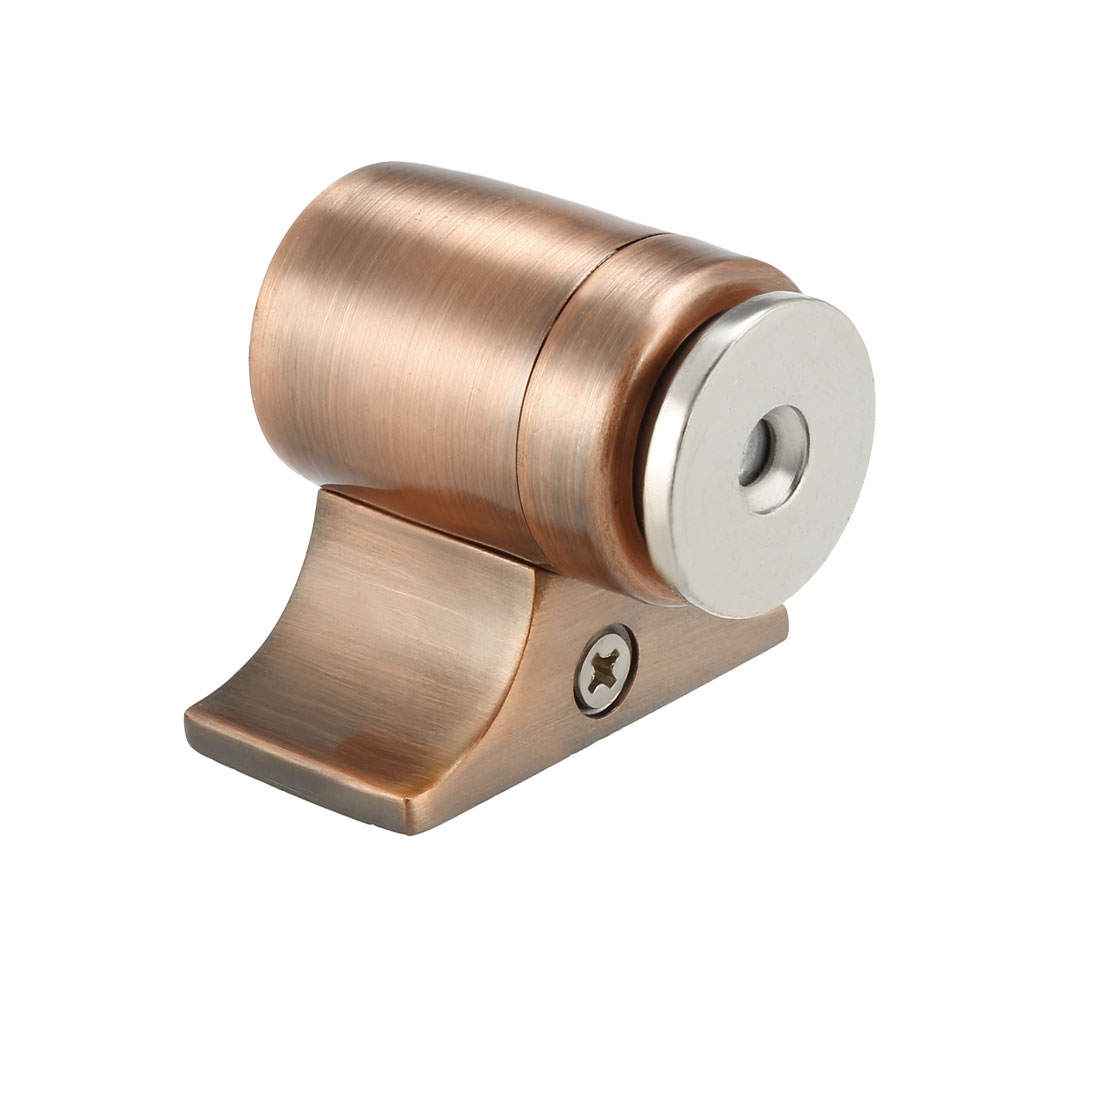 Magnetic Door Stopper Catch, Stainless Steel Door Stop Floor Mount Copper Tone